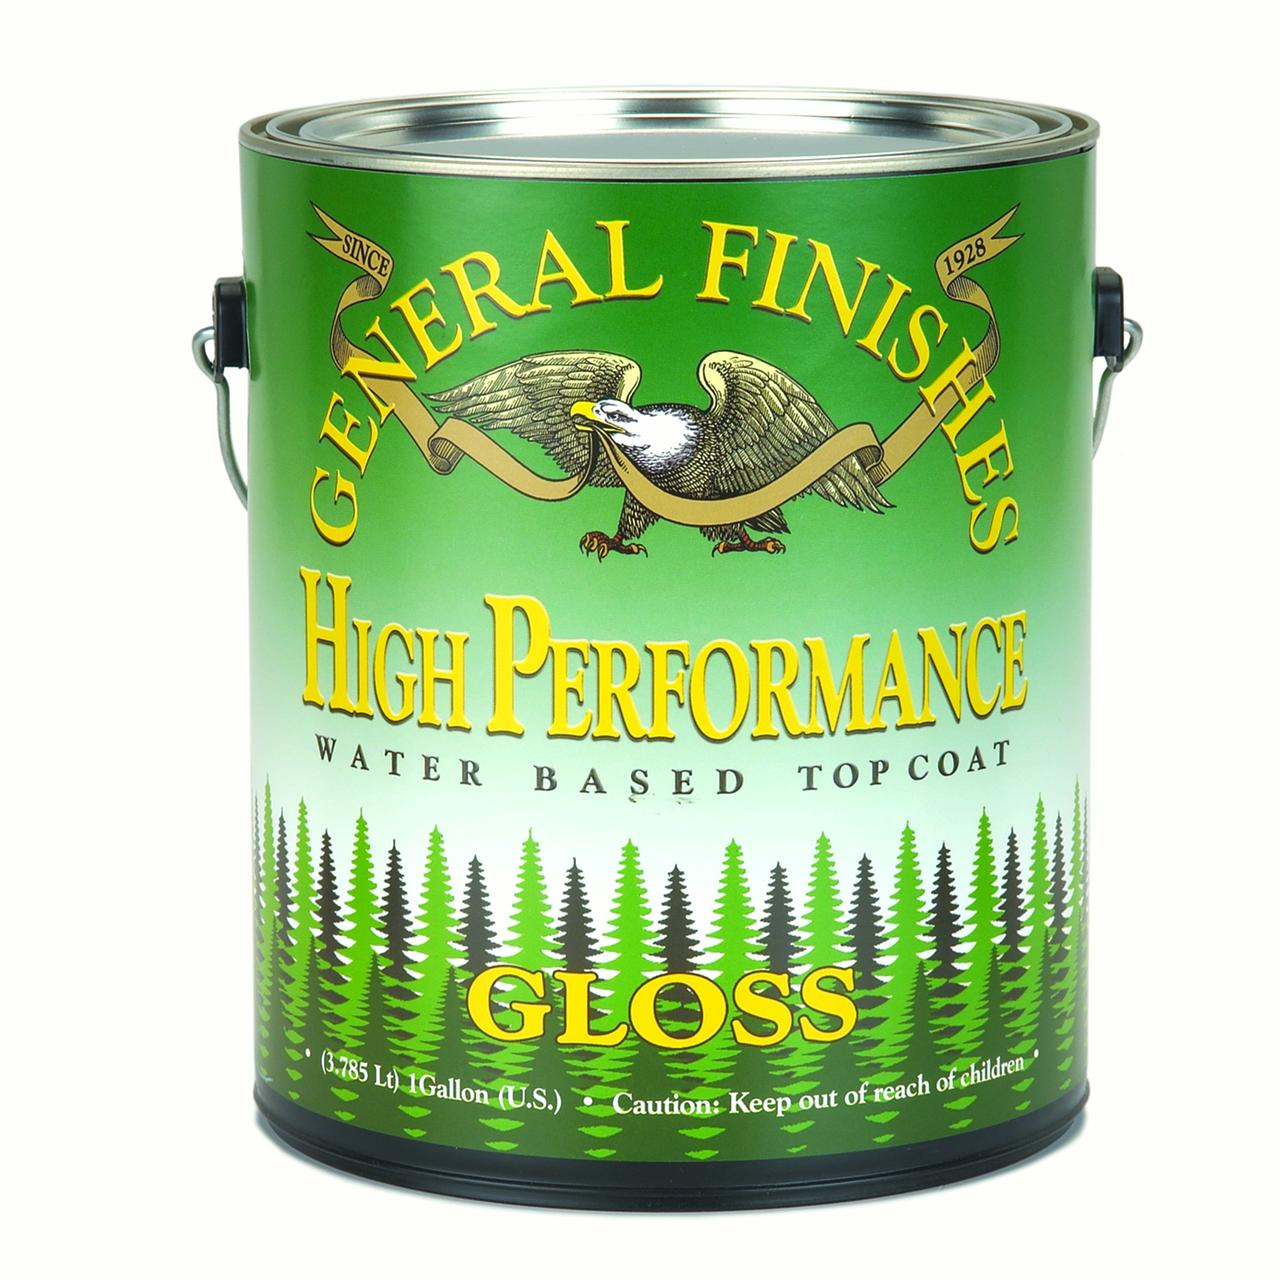 General Finishes, High Performance Polyurethane Topcoat, Gloss, Gallon